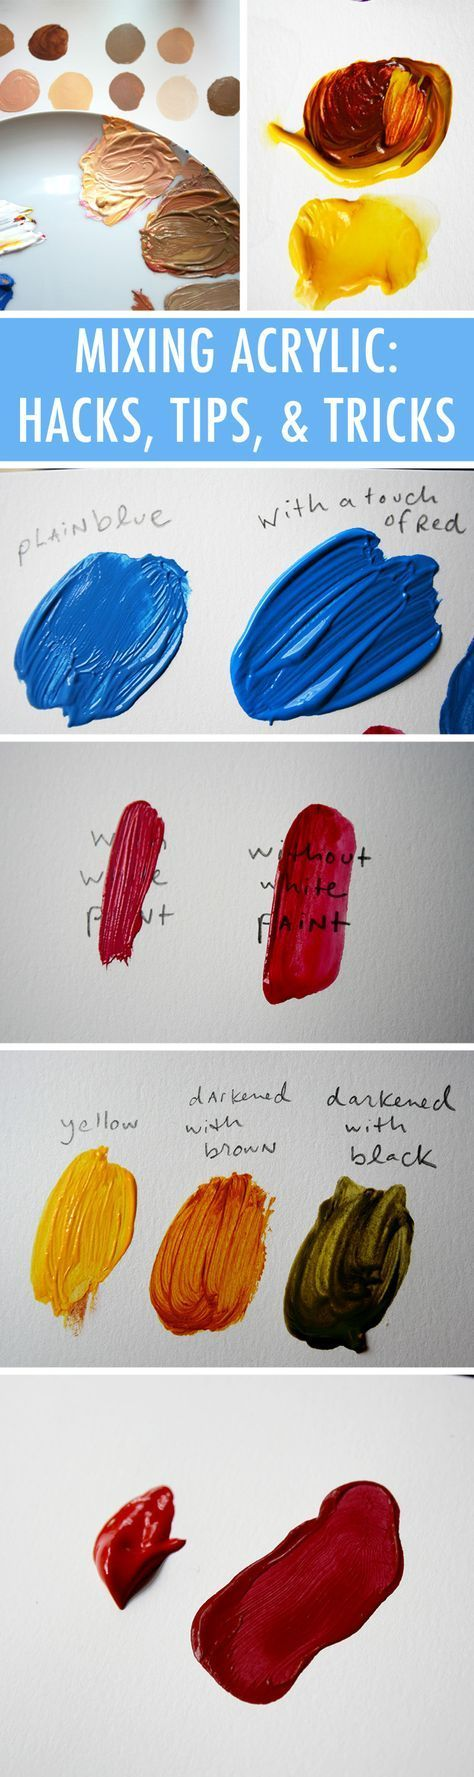 One of the most important parts of creating an acrylic painting takes place before you even put brush to canvas: mixing the paints. Learning how to mix acrylic paint ‰ÛÓ including some tips and tricks ‰ÛÓ will help you create beautiful colors that will make your artwork more vibrant and realistic. #Paint